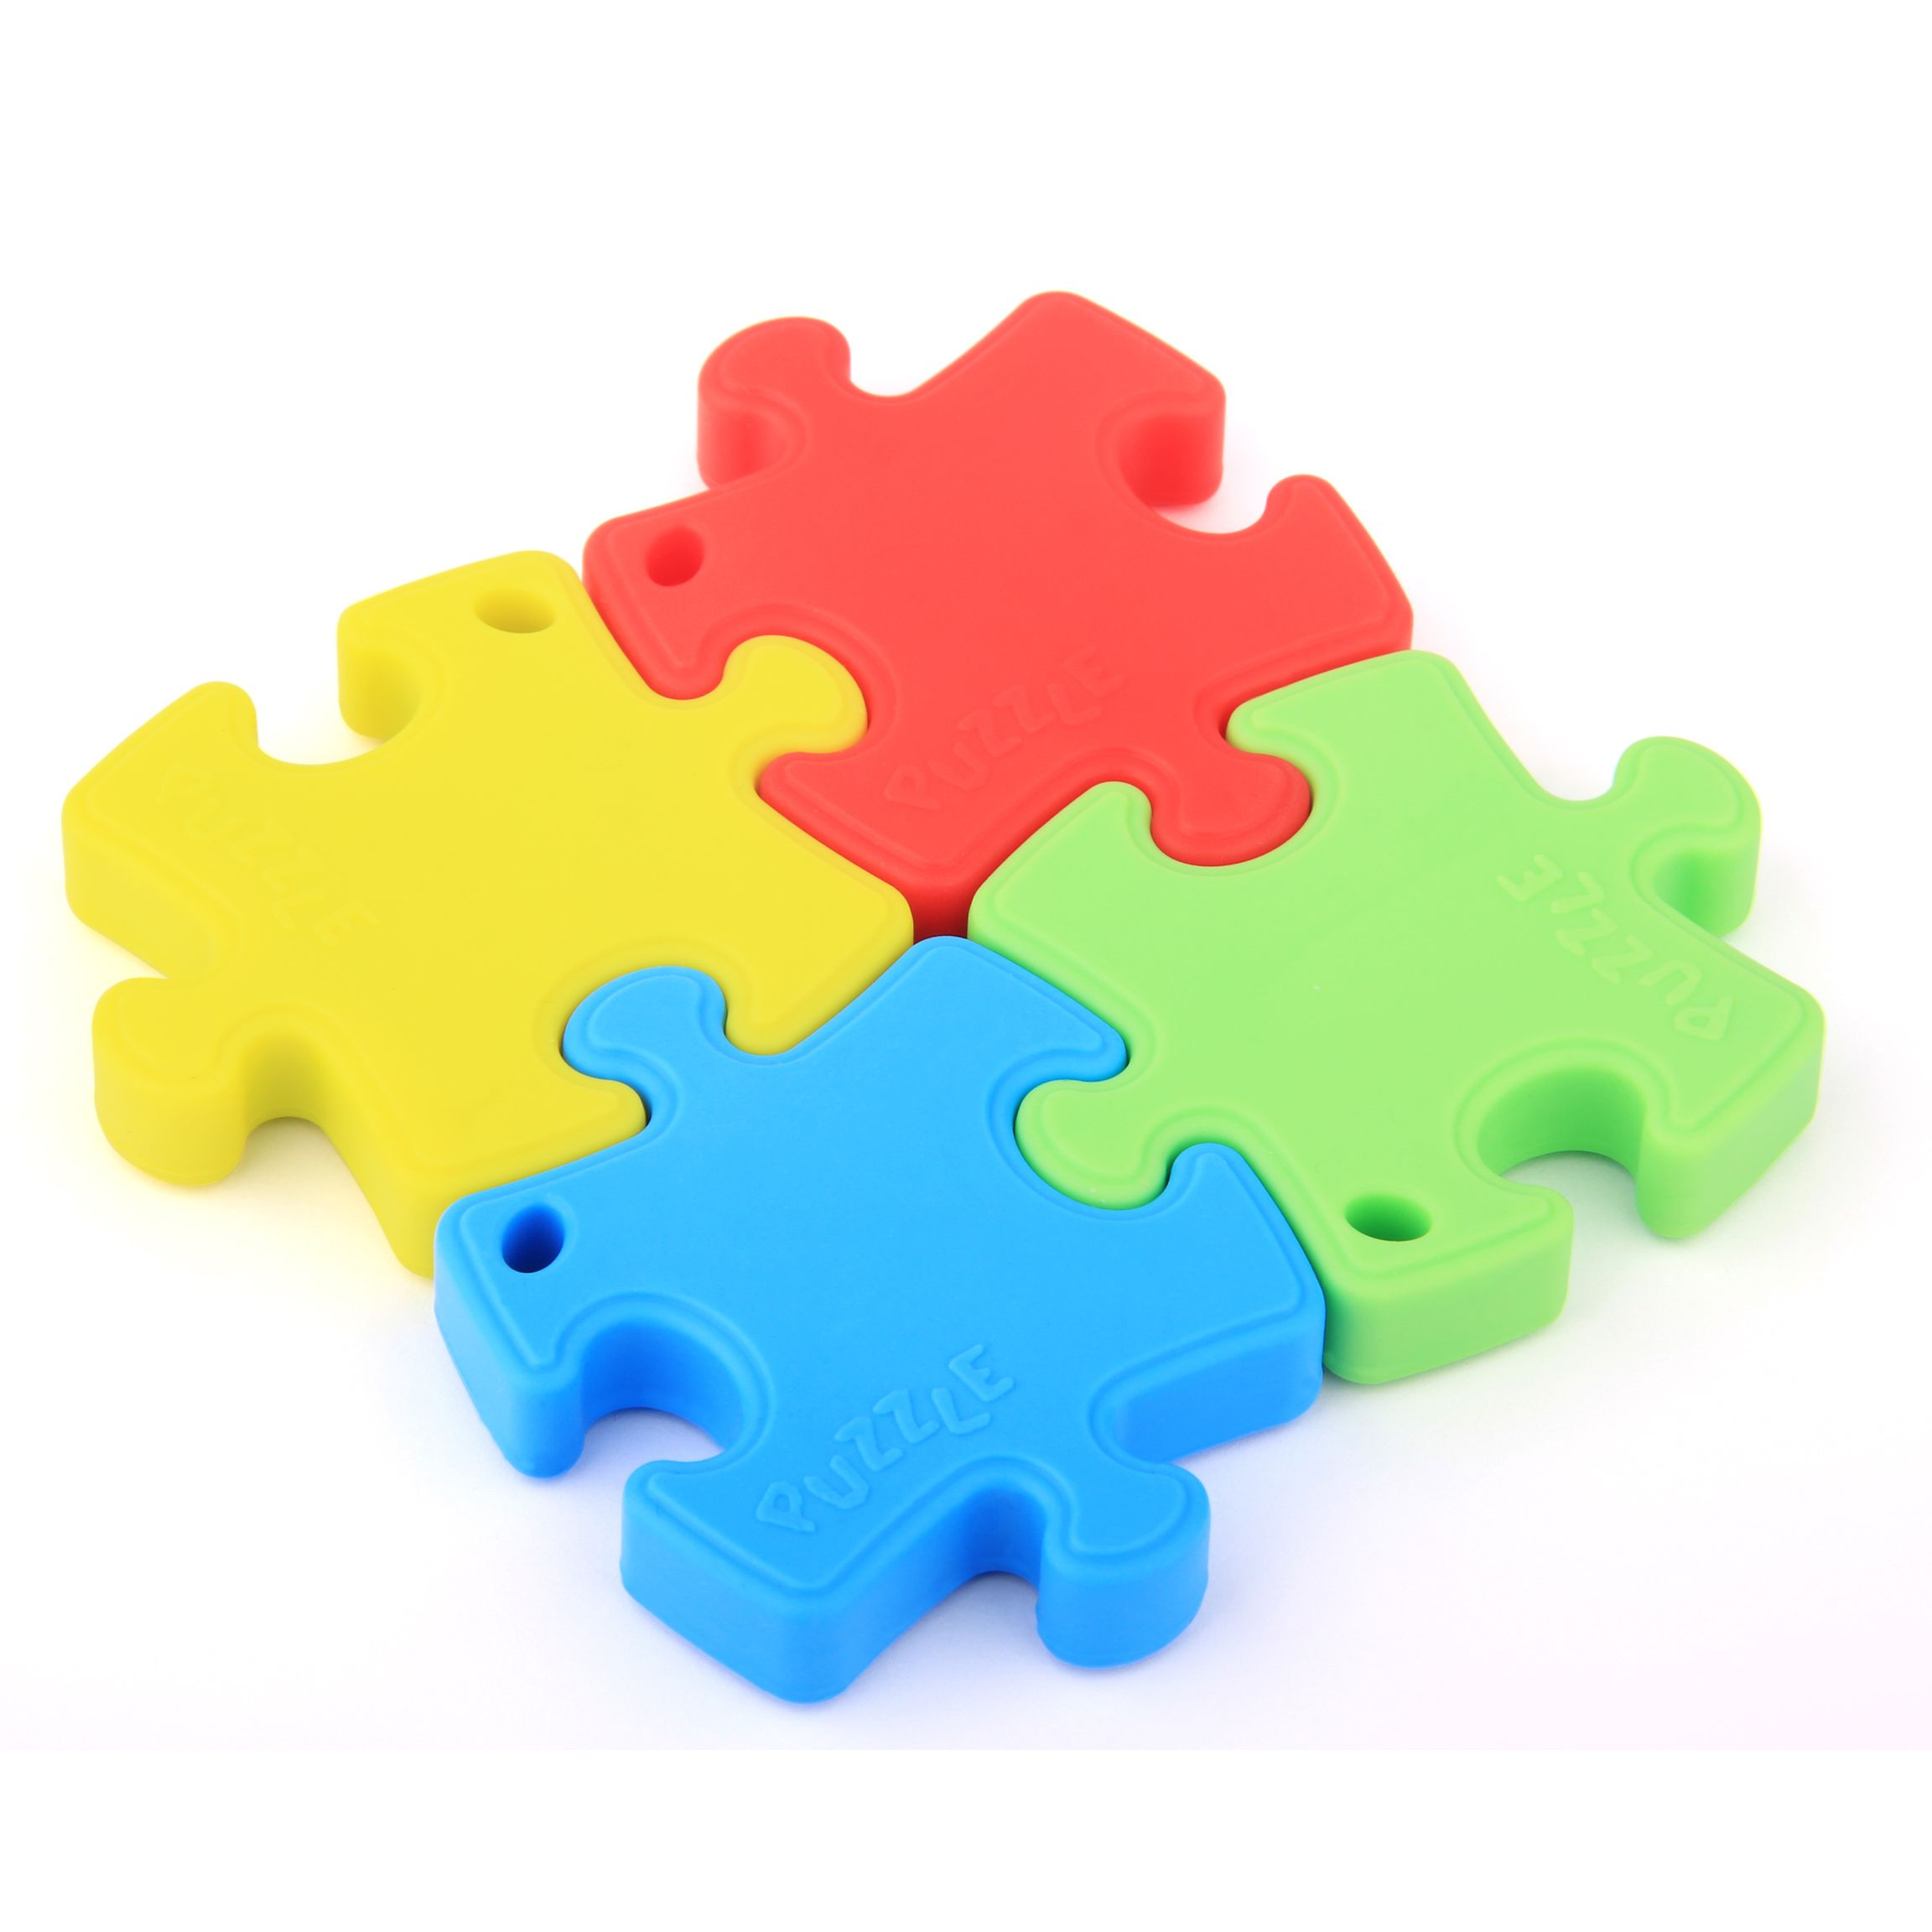 Silicone Teether Jigsaw Puzzles